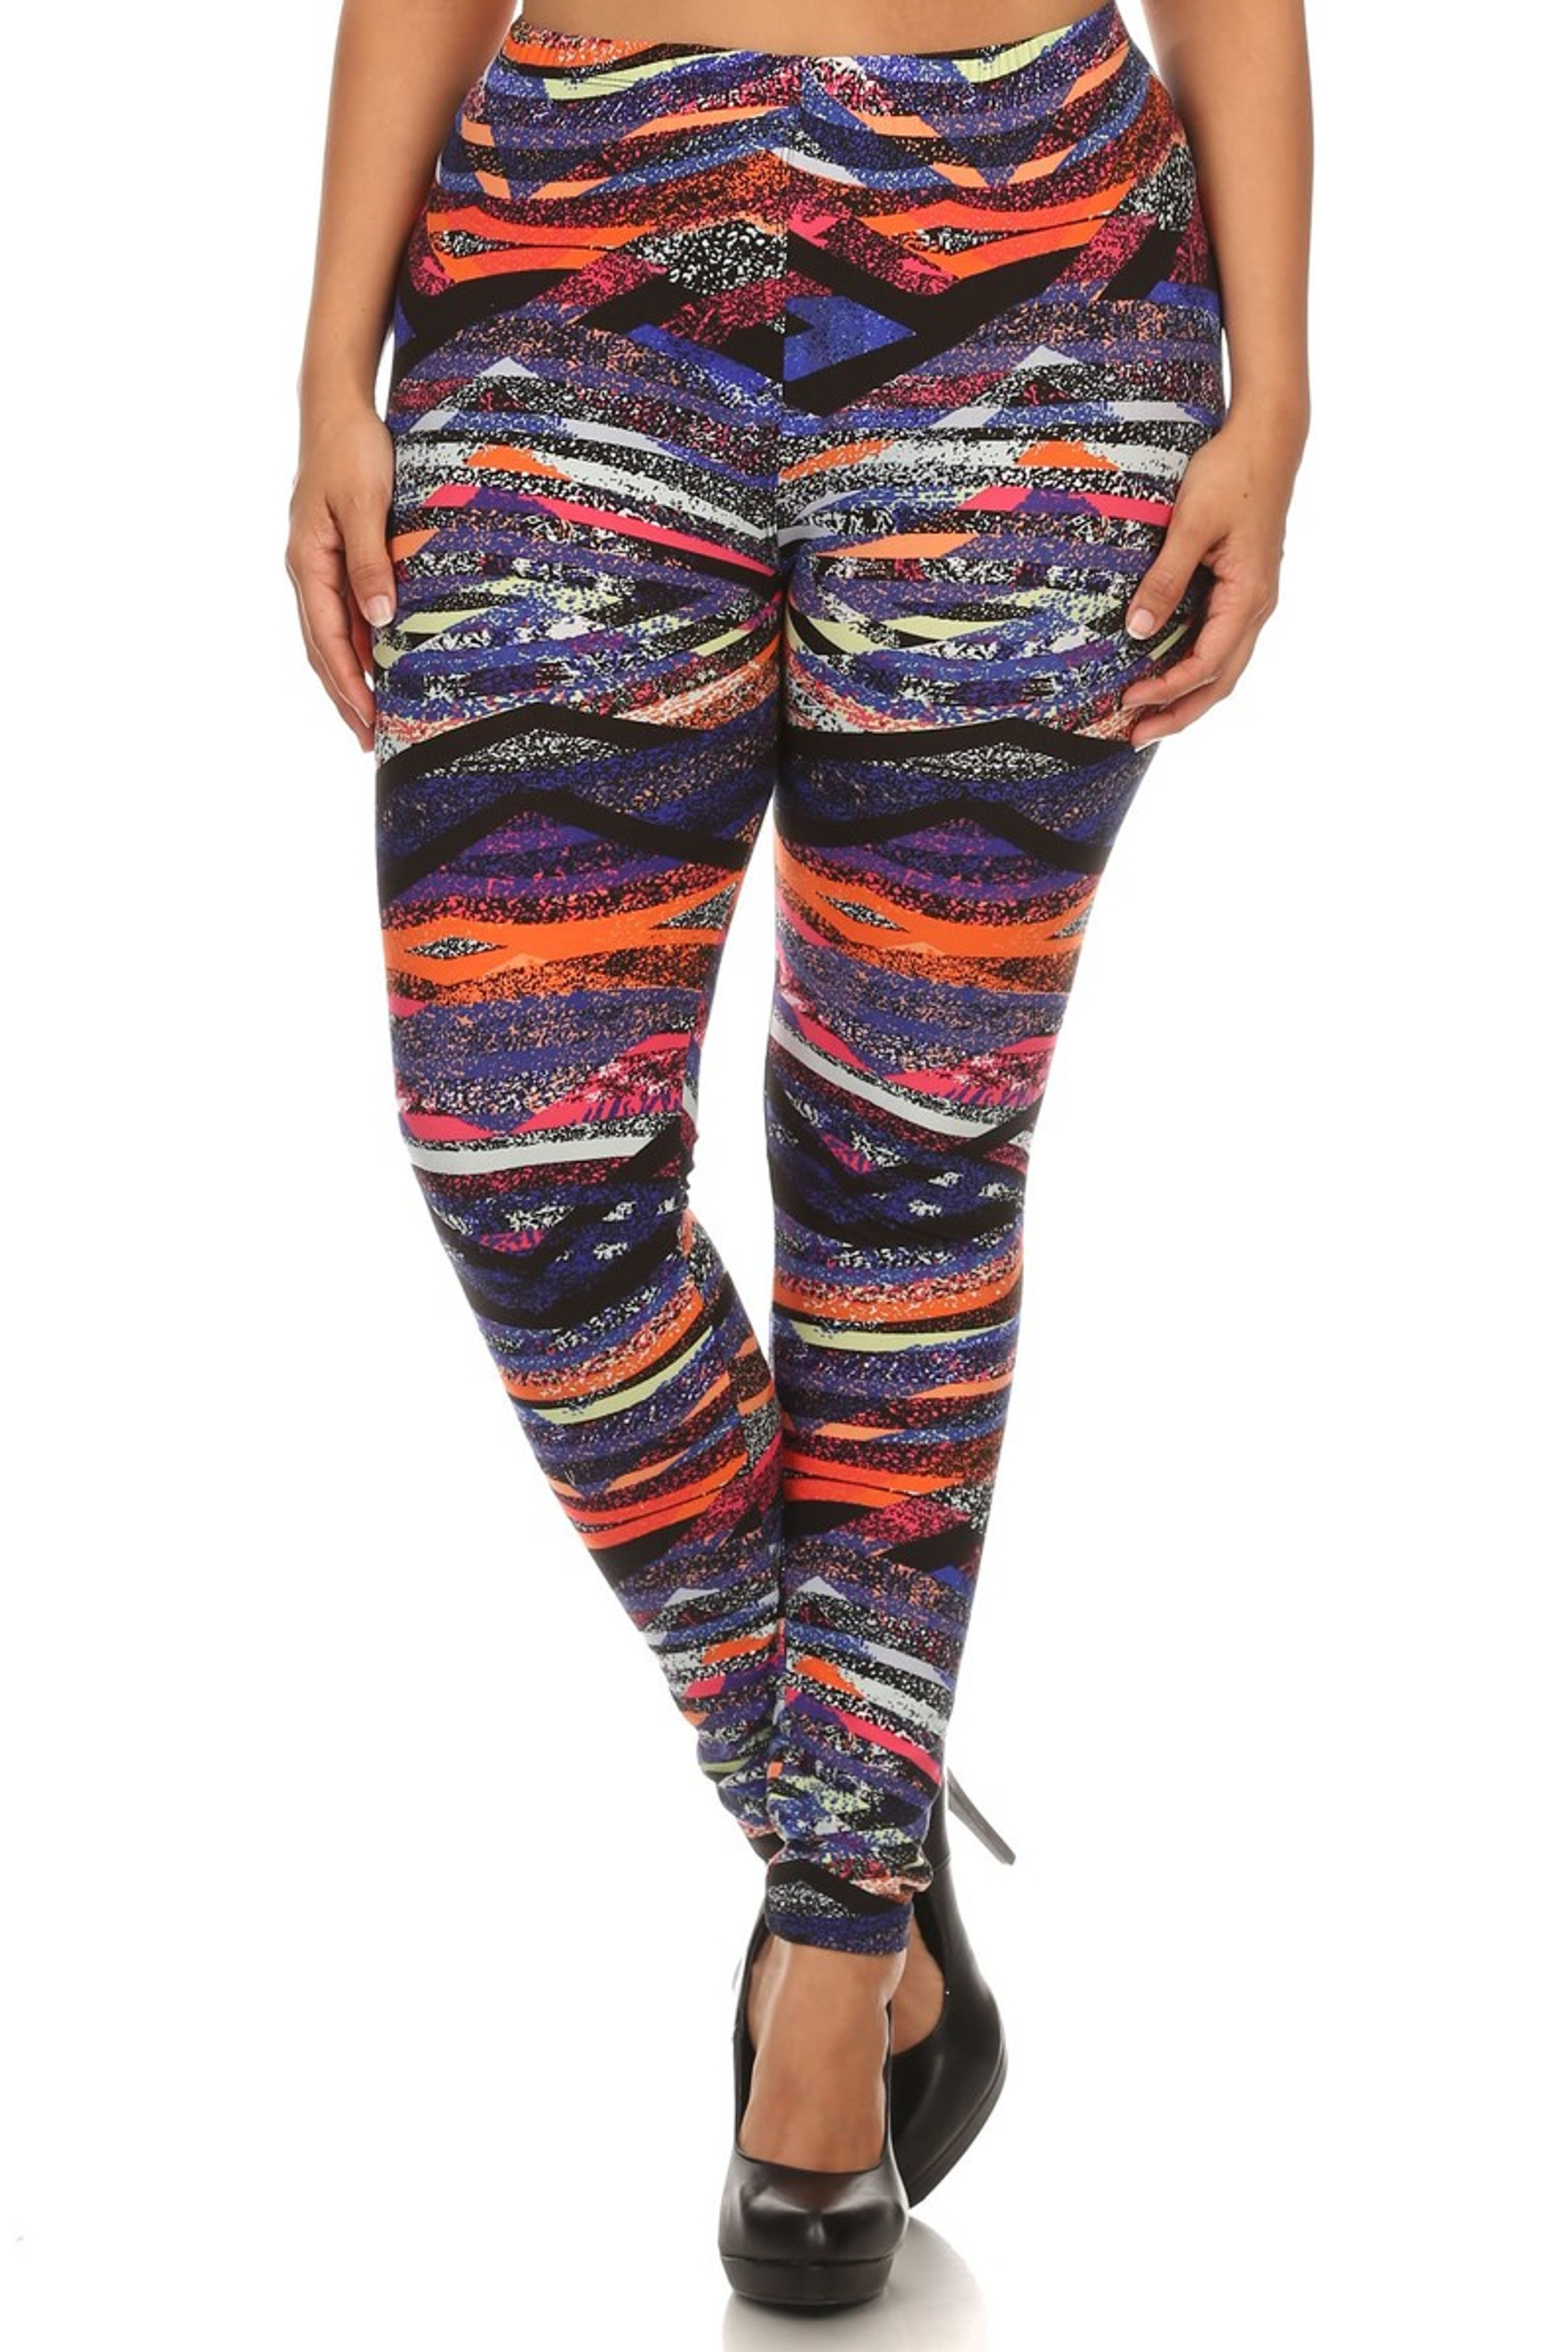 Front side image of Brushed Colorful Bands Plus Size Leggings